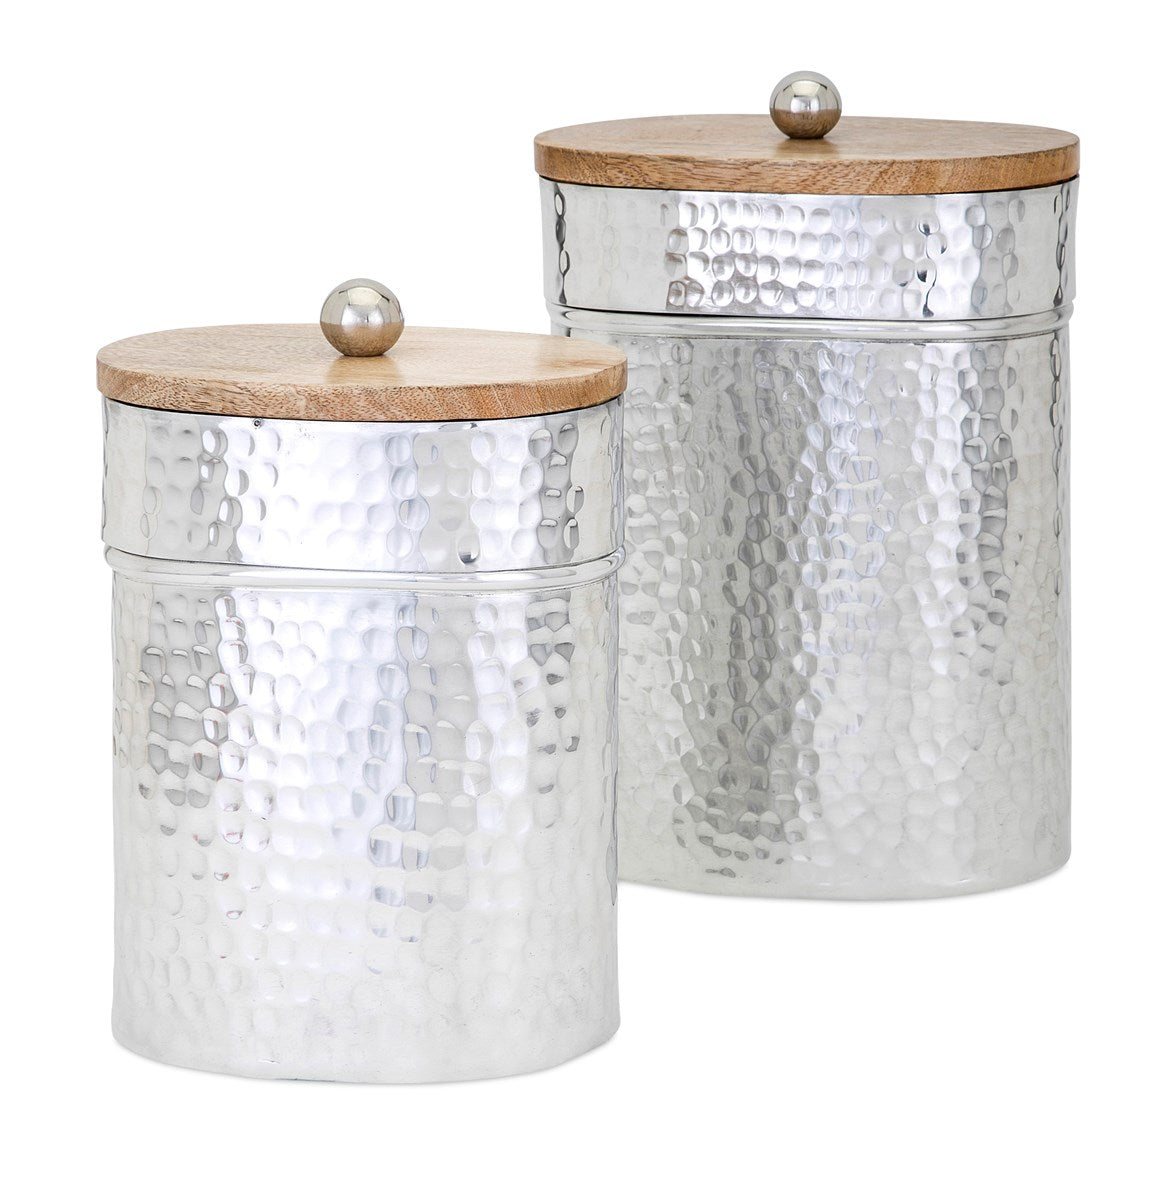 Lidded Aluminum Canisters, Set of 2